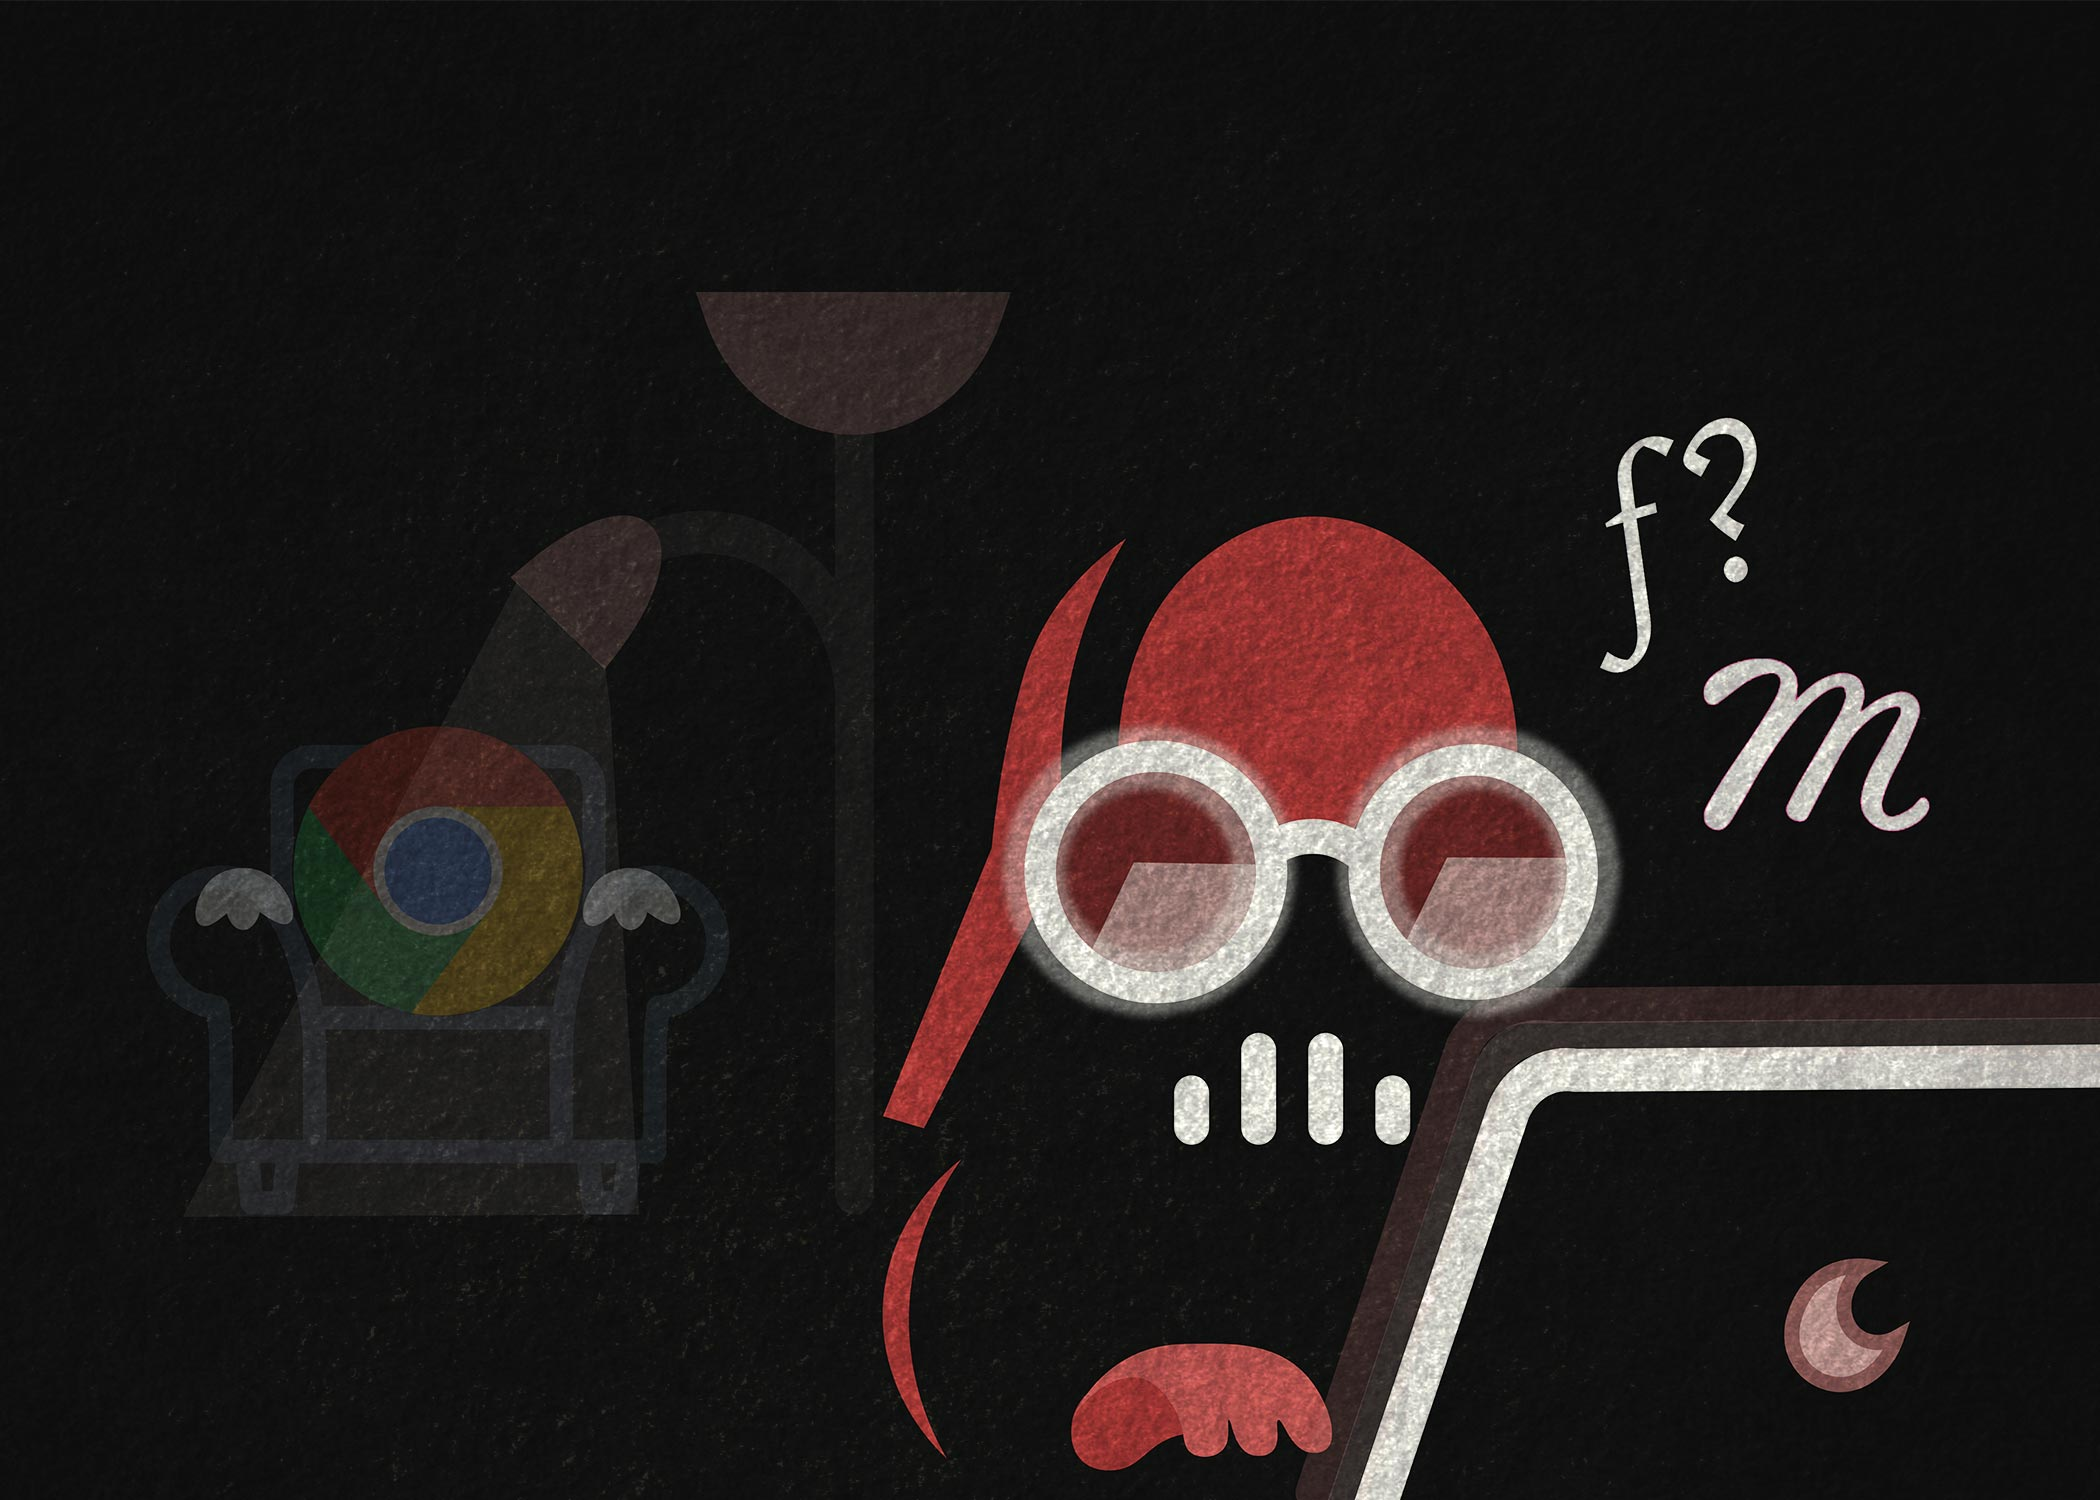 6 Chrome Extensions Every Designer Dreams Of